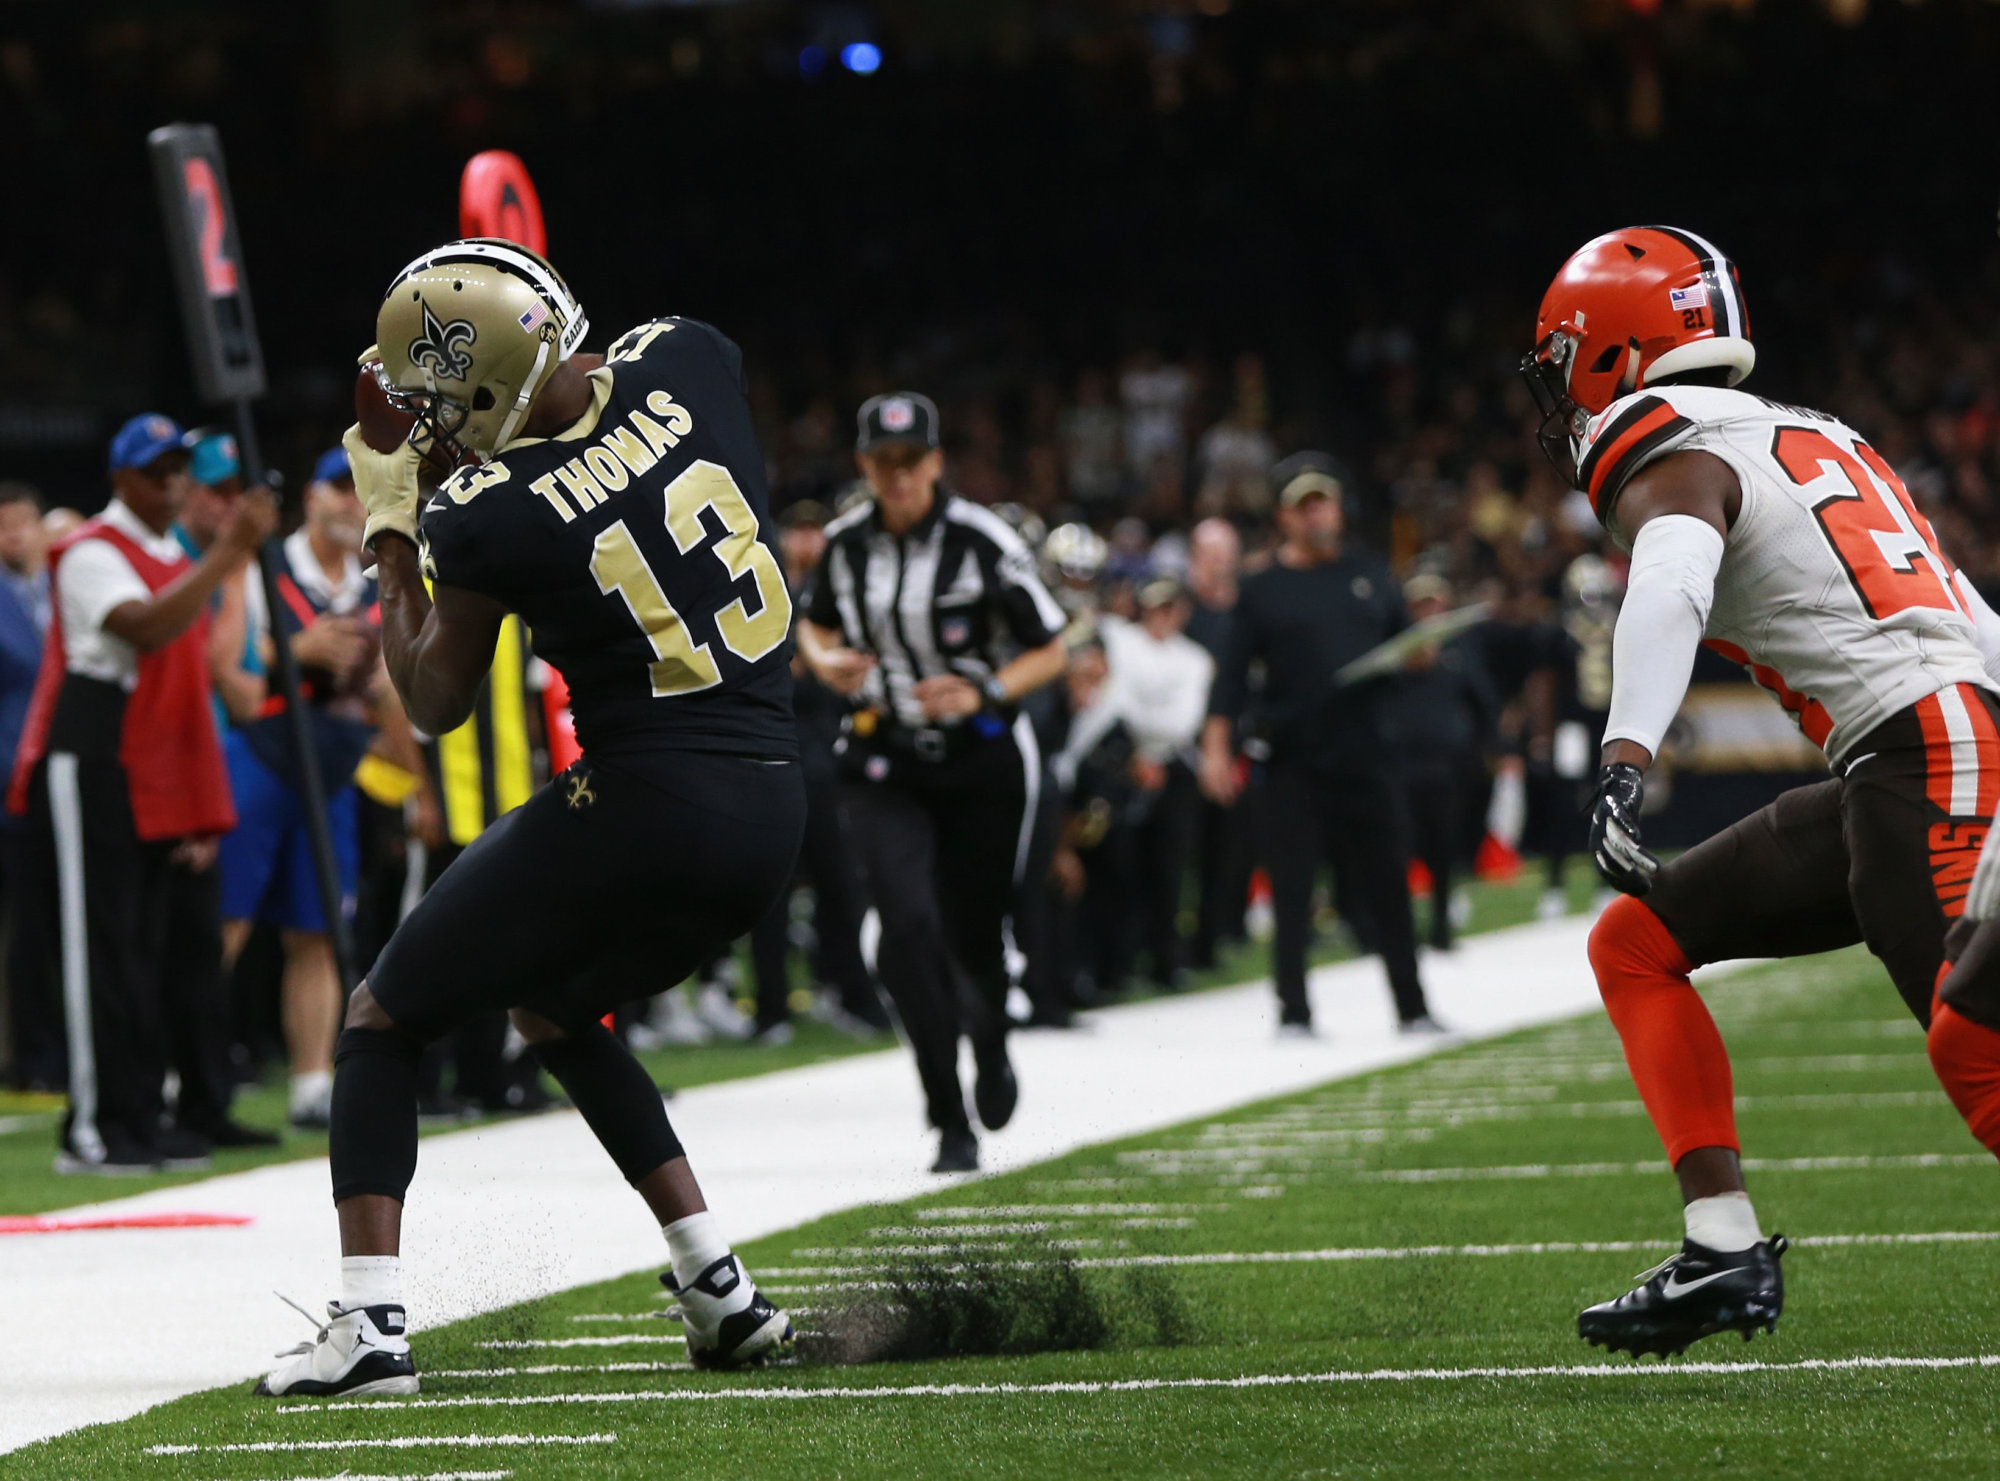 NEW ORLEANS, LA - SEPTEMBER 16:  Michael Thomas #13 of the New Orleans Saints catches the ball  during the fourth quarter against the Cleveland Browns  at Mercedes-Benz Superdome on September 16, 2018 in New Orleans, Louisiana.  (Photo by Sean Gardner/Getty Images)